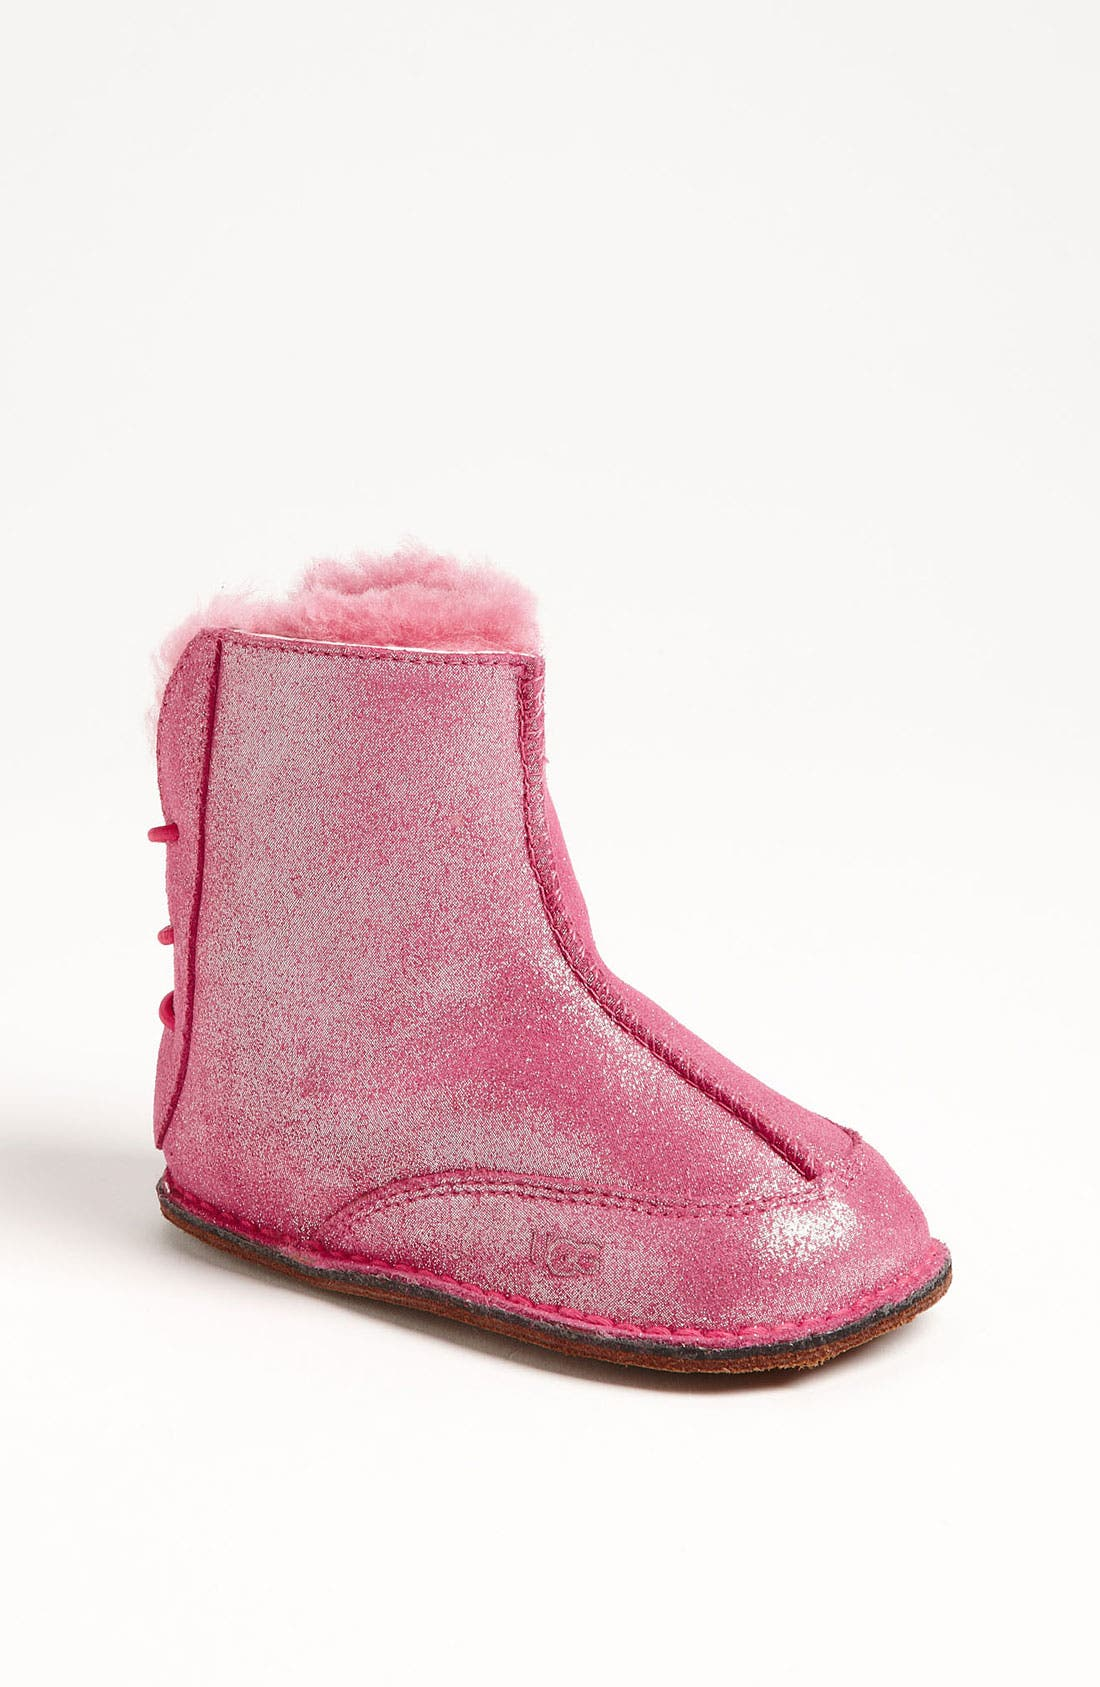 Alternate Image 1 Selected - UGG® Australia 'Boo' Glitter Bootie (Baby & Walker)